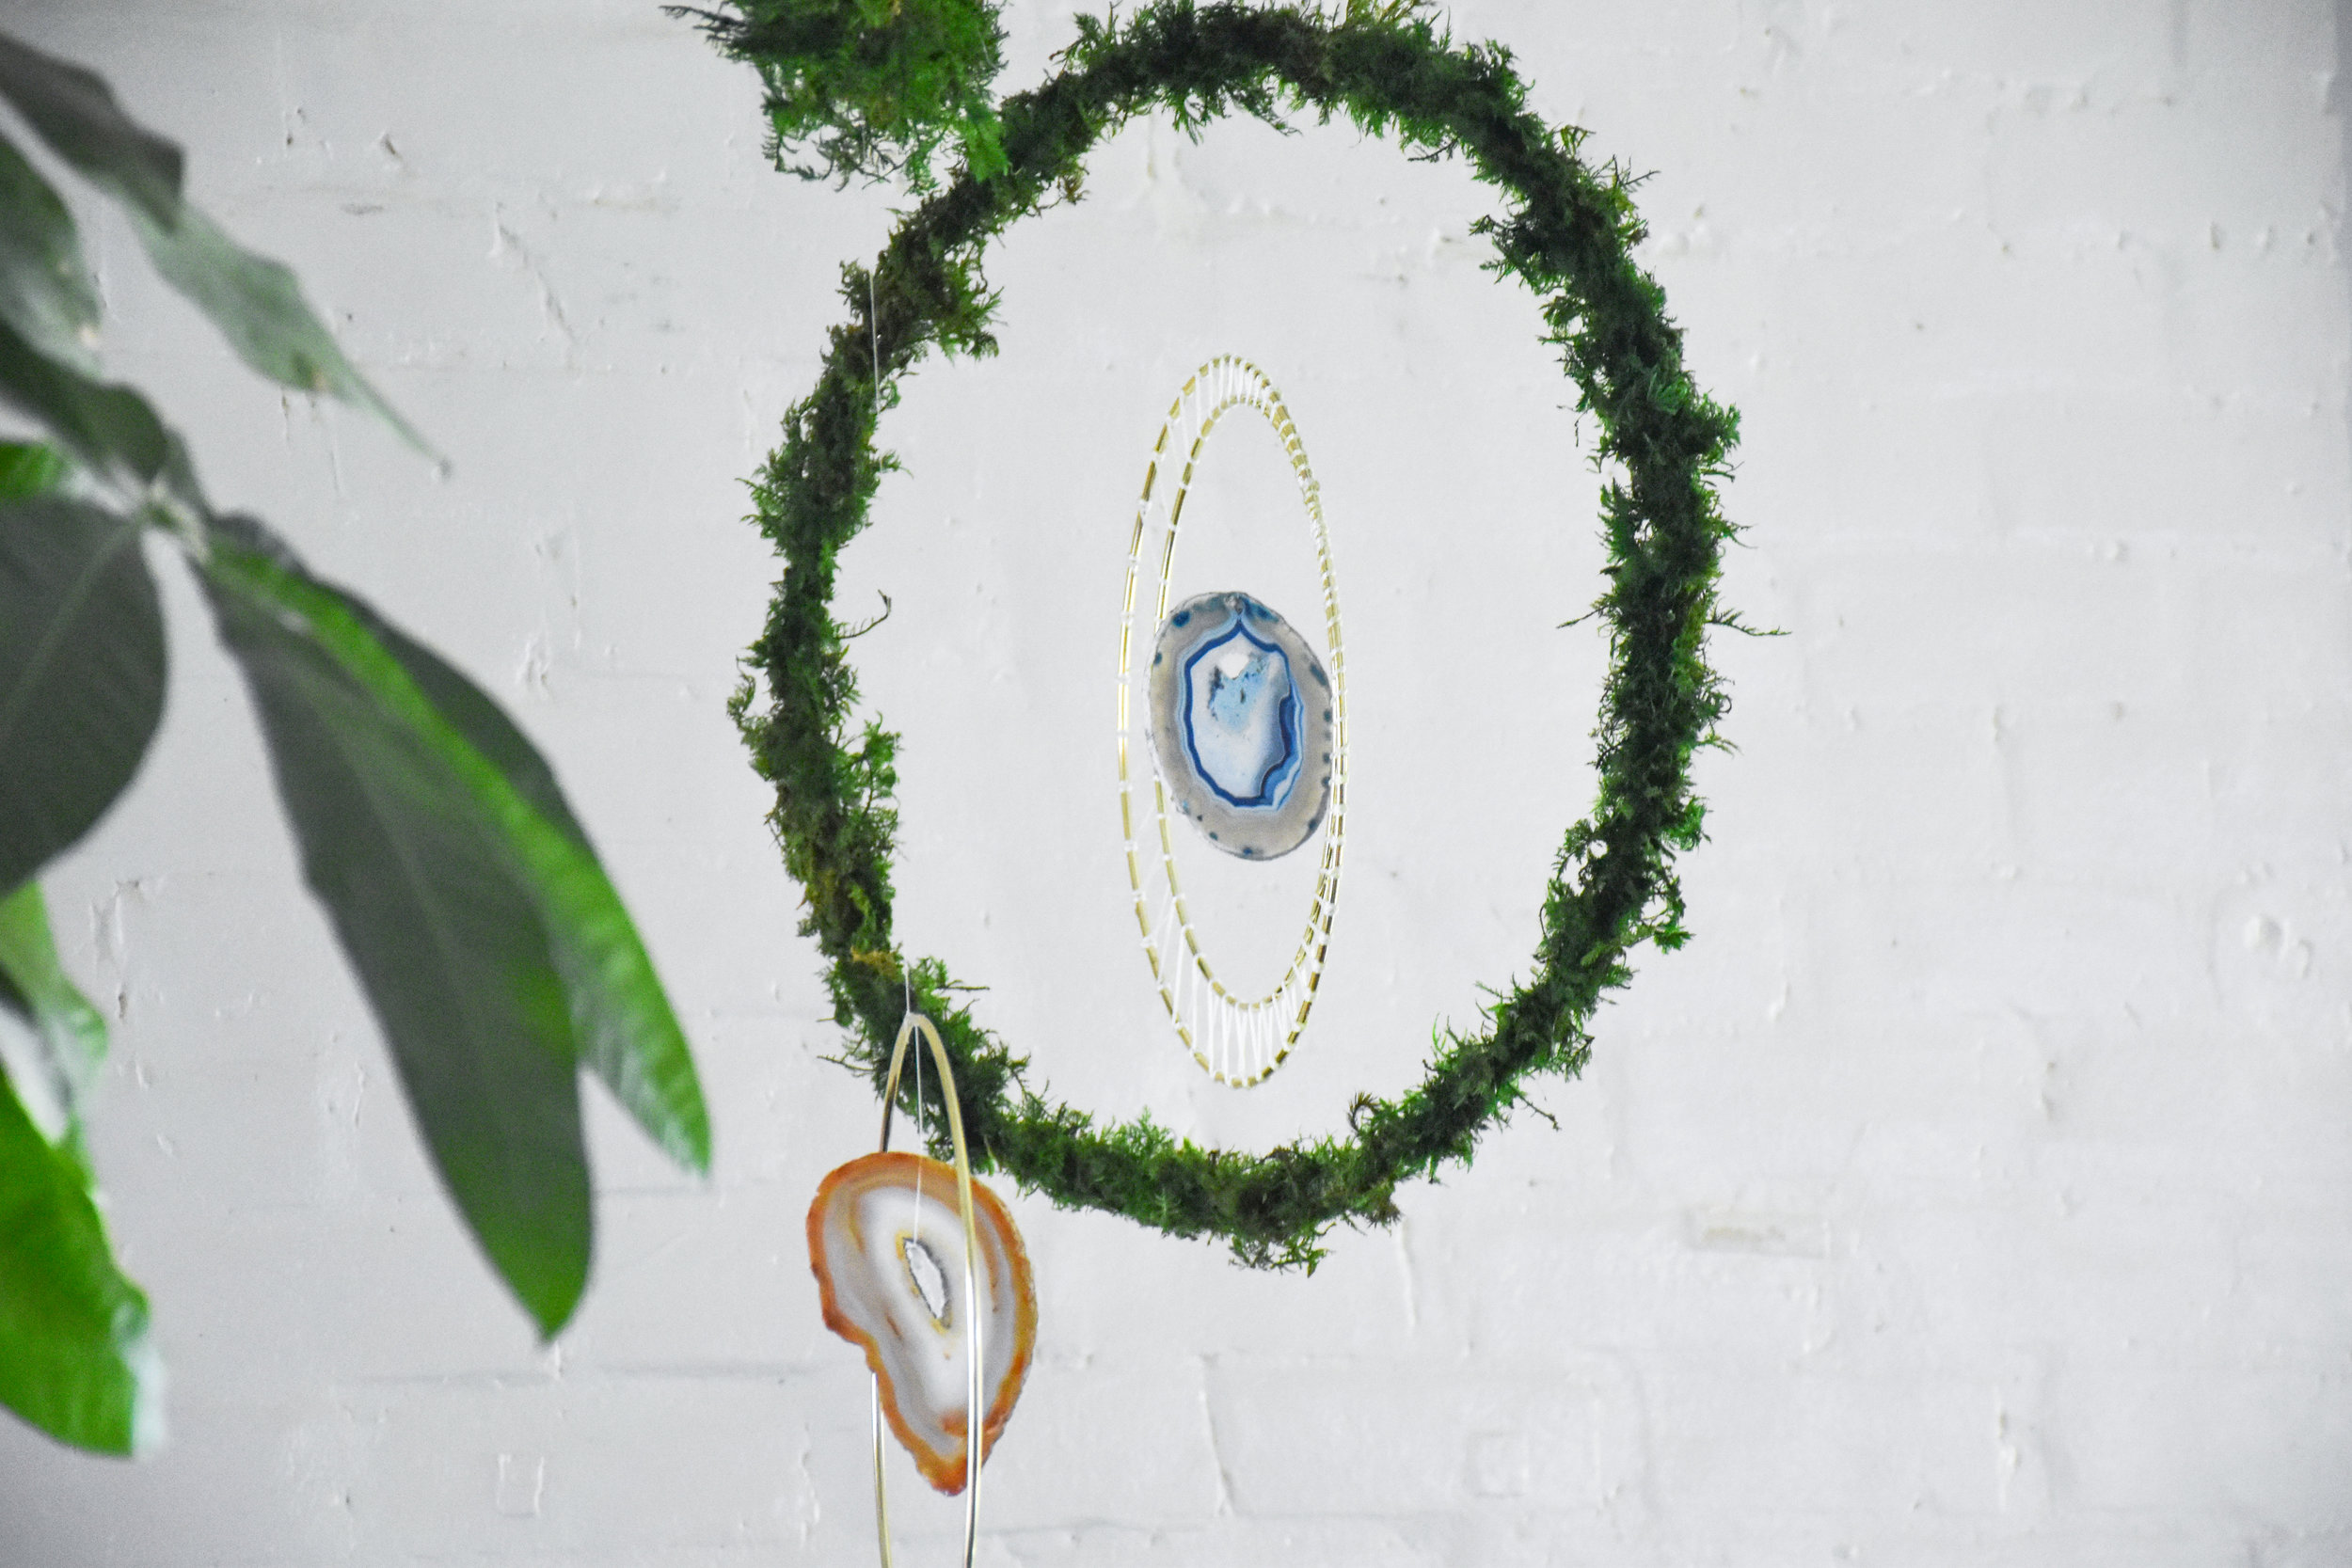 LUNAR RINGS - Escape into this portal of lushness. A valley, dense forest or an unknown overgrown world...this moss wall is meant to remind you of those natural places that ignite a sense of peace. Sparkling crystals add extra magic to this vibrant moss.